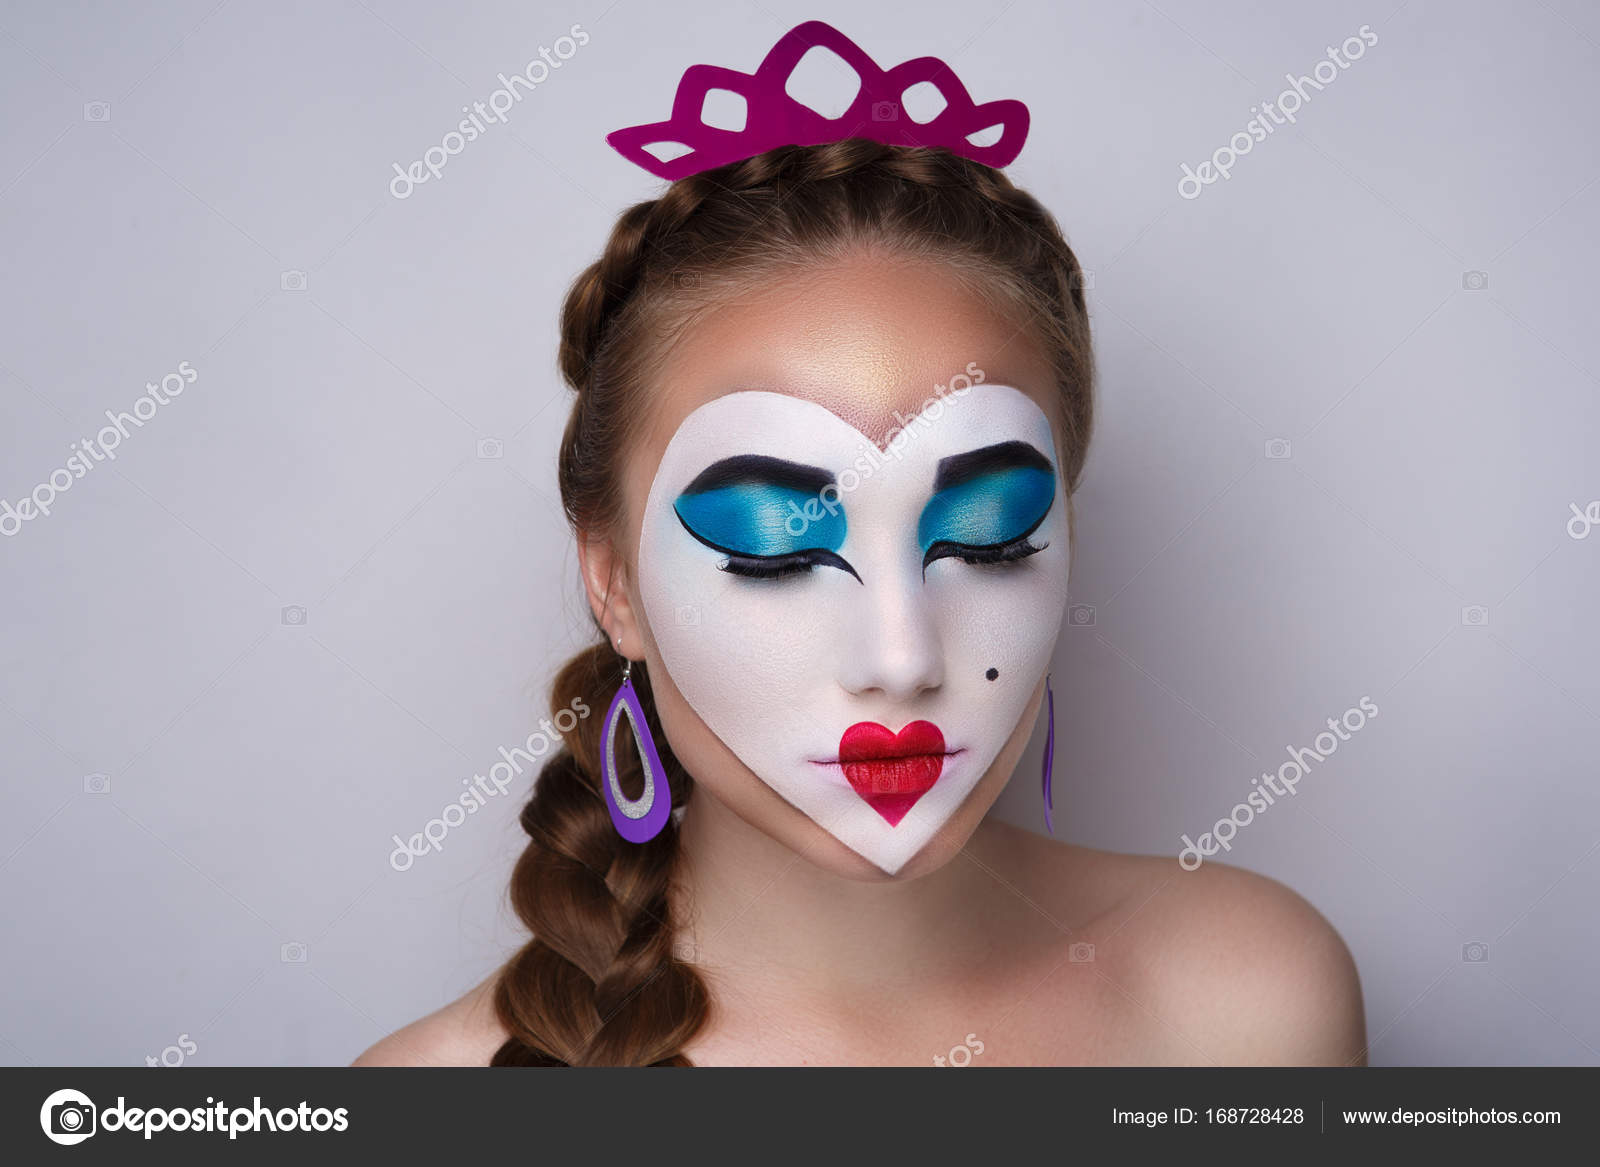 Pictures : queen of hearts art | The queen of hearts art make up ...